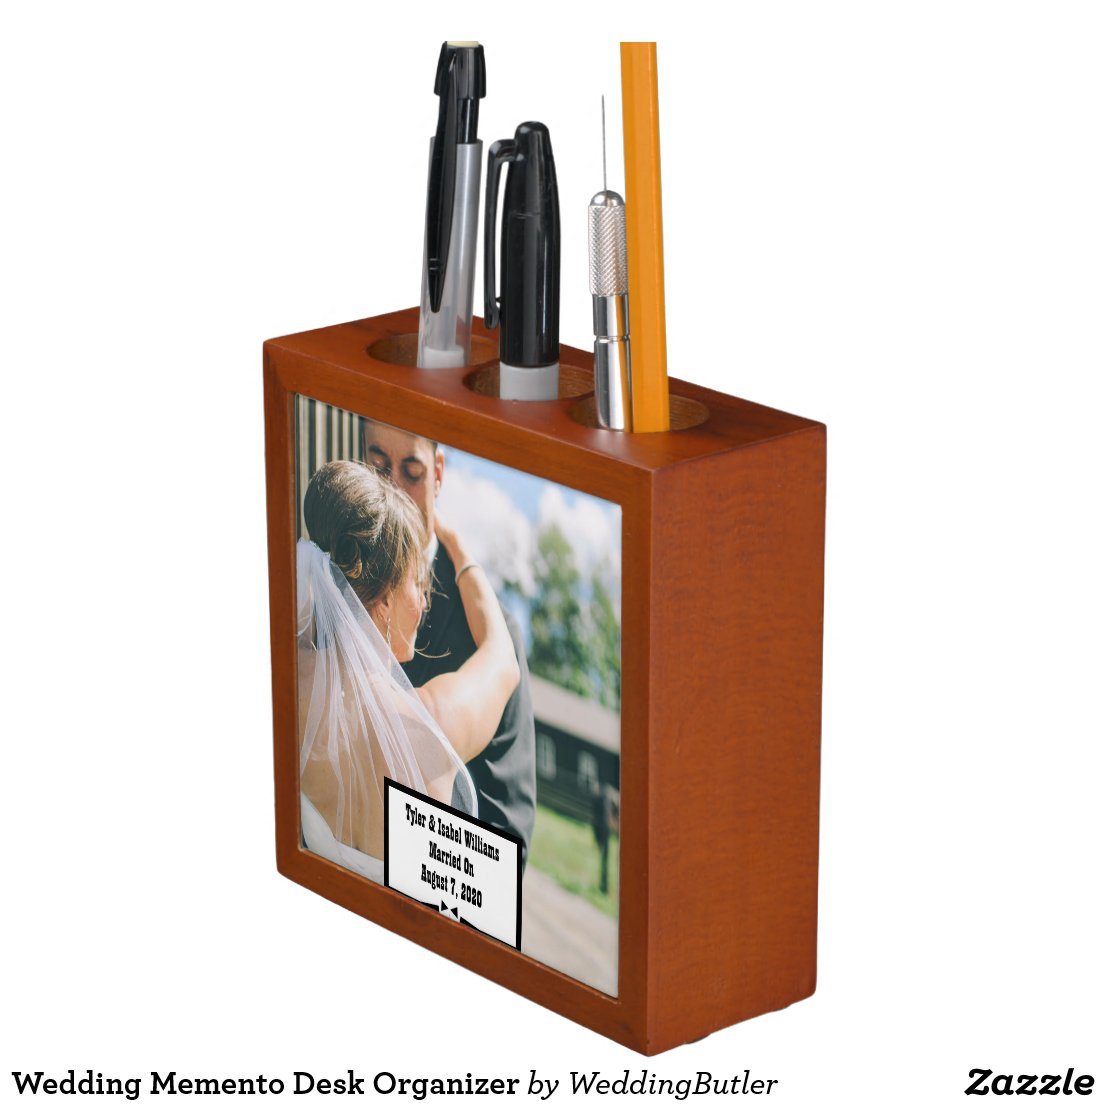 Wedding Memento Desk Organizer